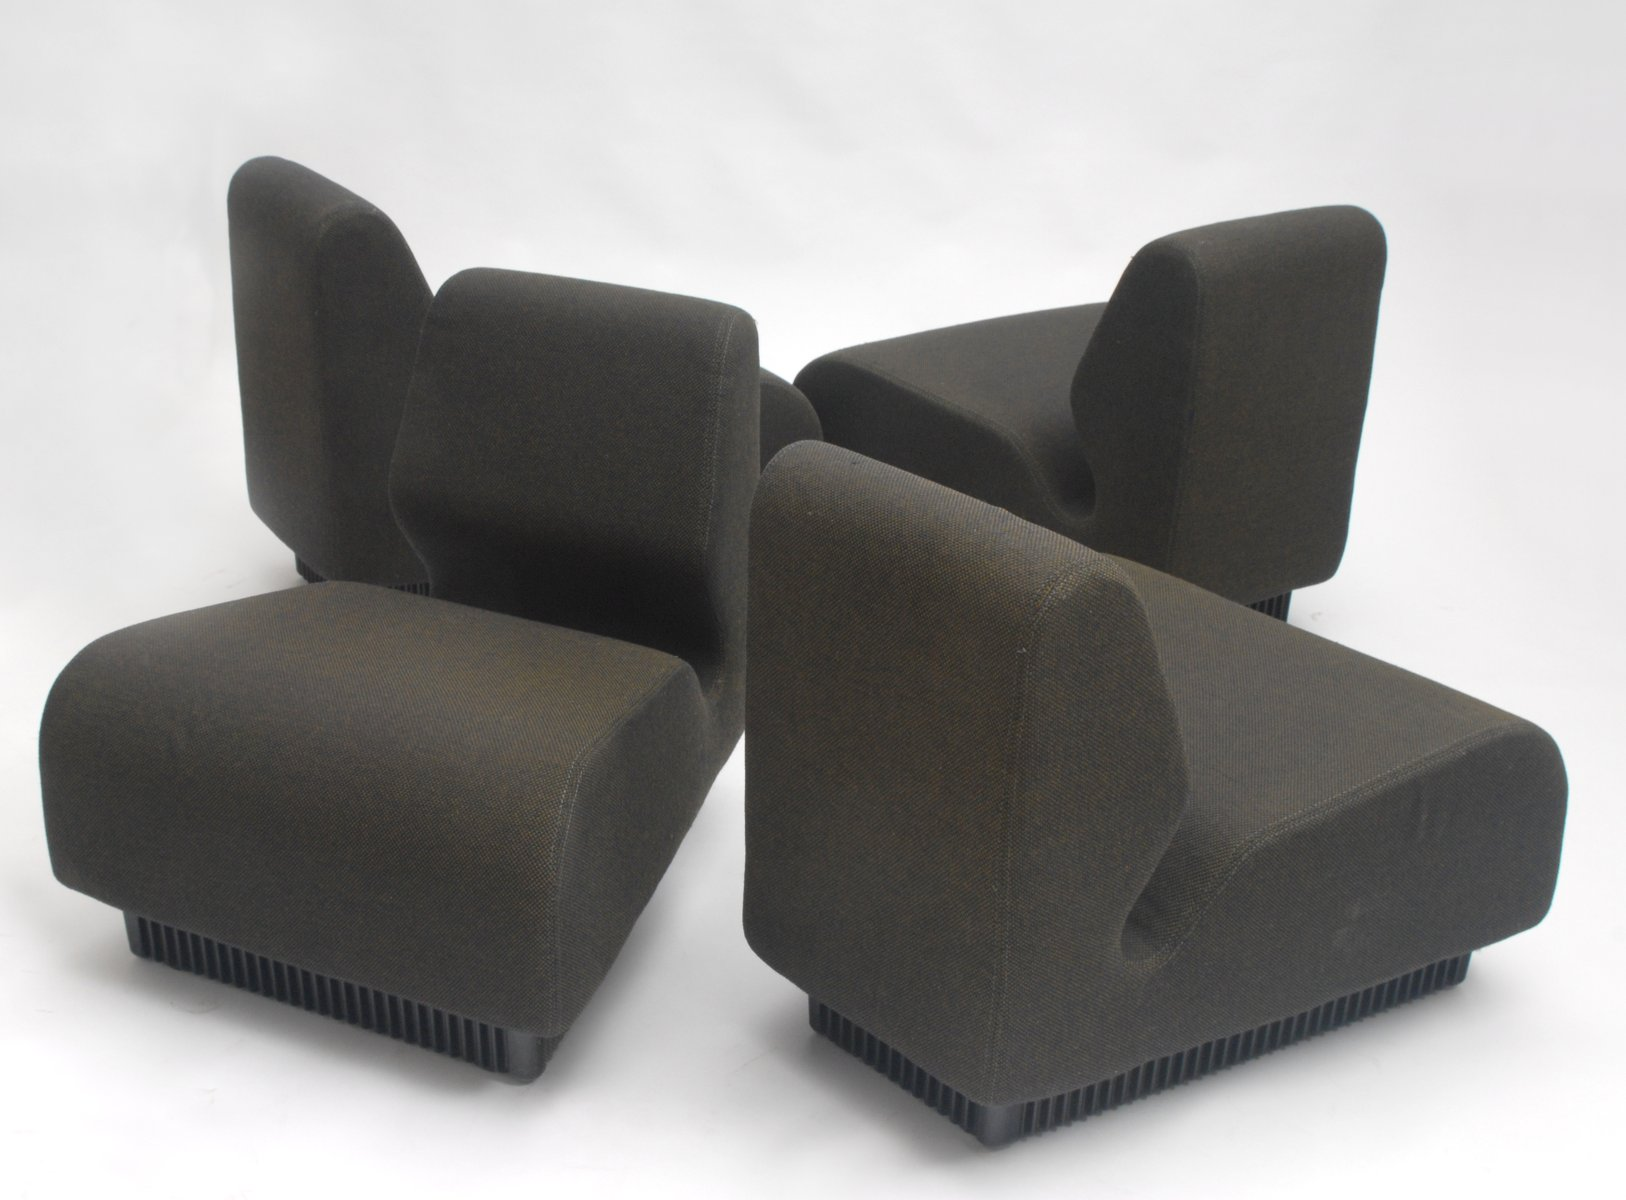 Vintage Modular Sofa by Don Chadwick for Herman Miller Set of 2